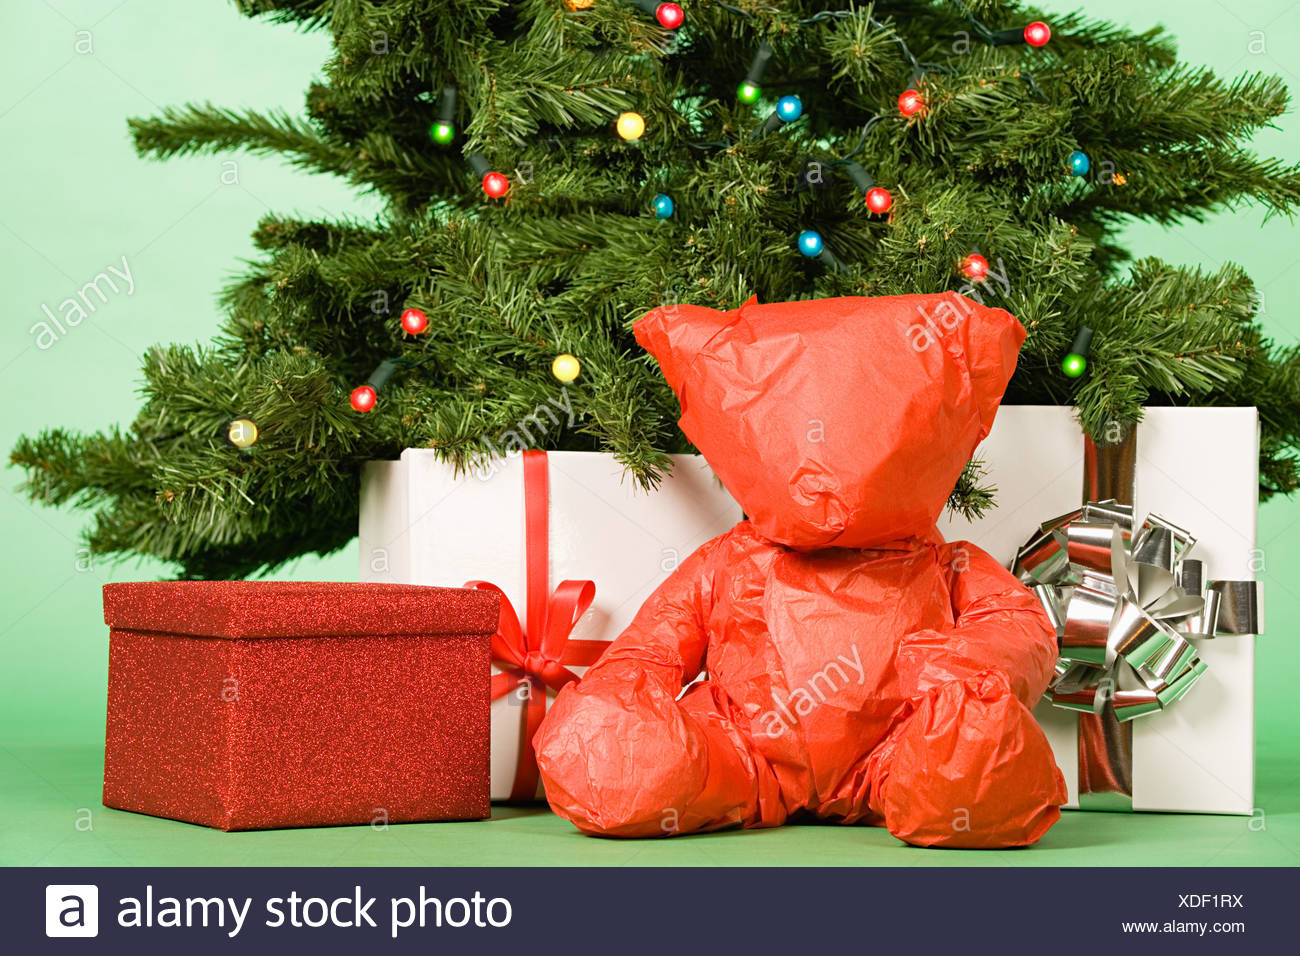 Gifts Under Christmas Tree Stock Photos & Gifts Under Christmas Tree ...